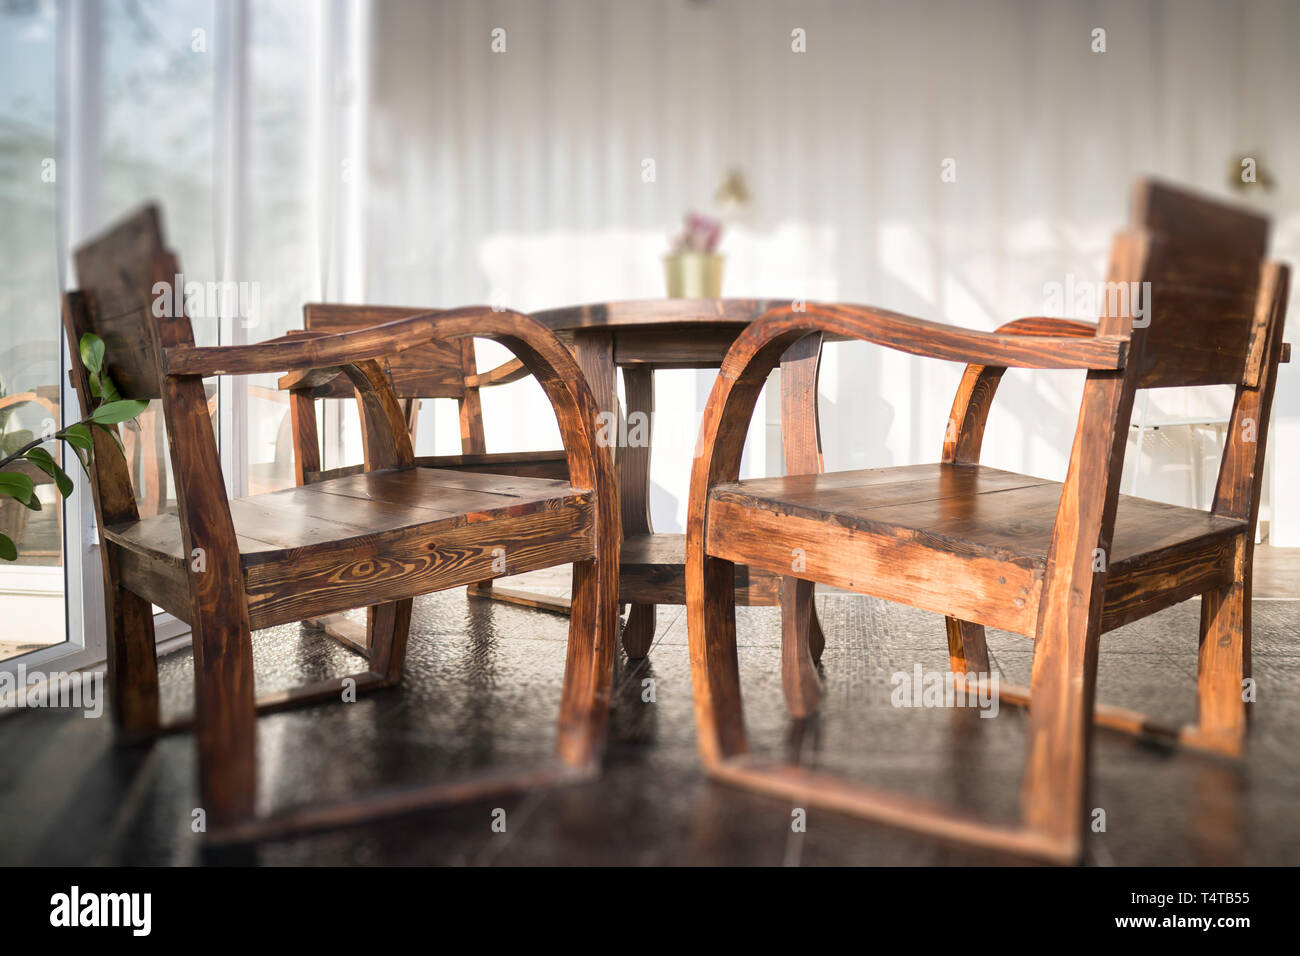 Cargo Container Cafe With Wooden Furniture Set Stock Photo Stock Photo Alamy